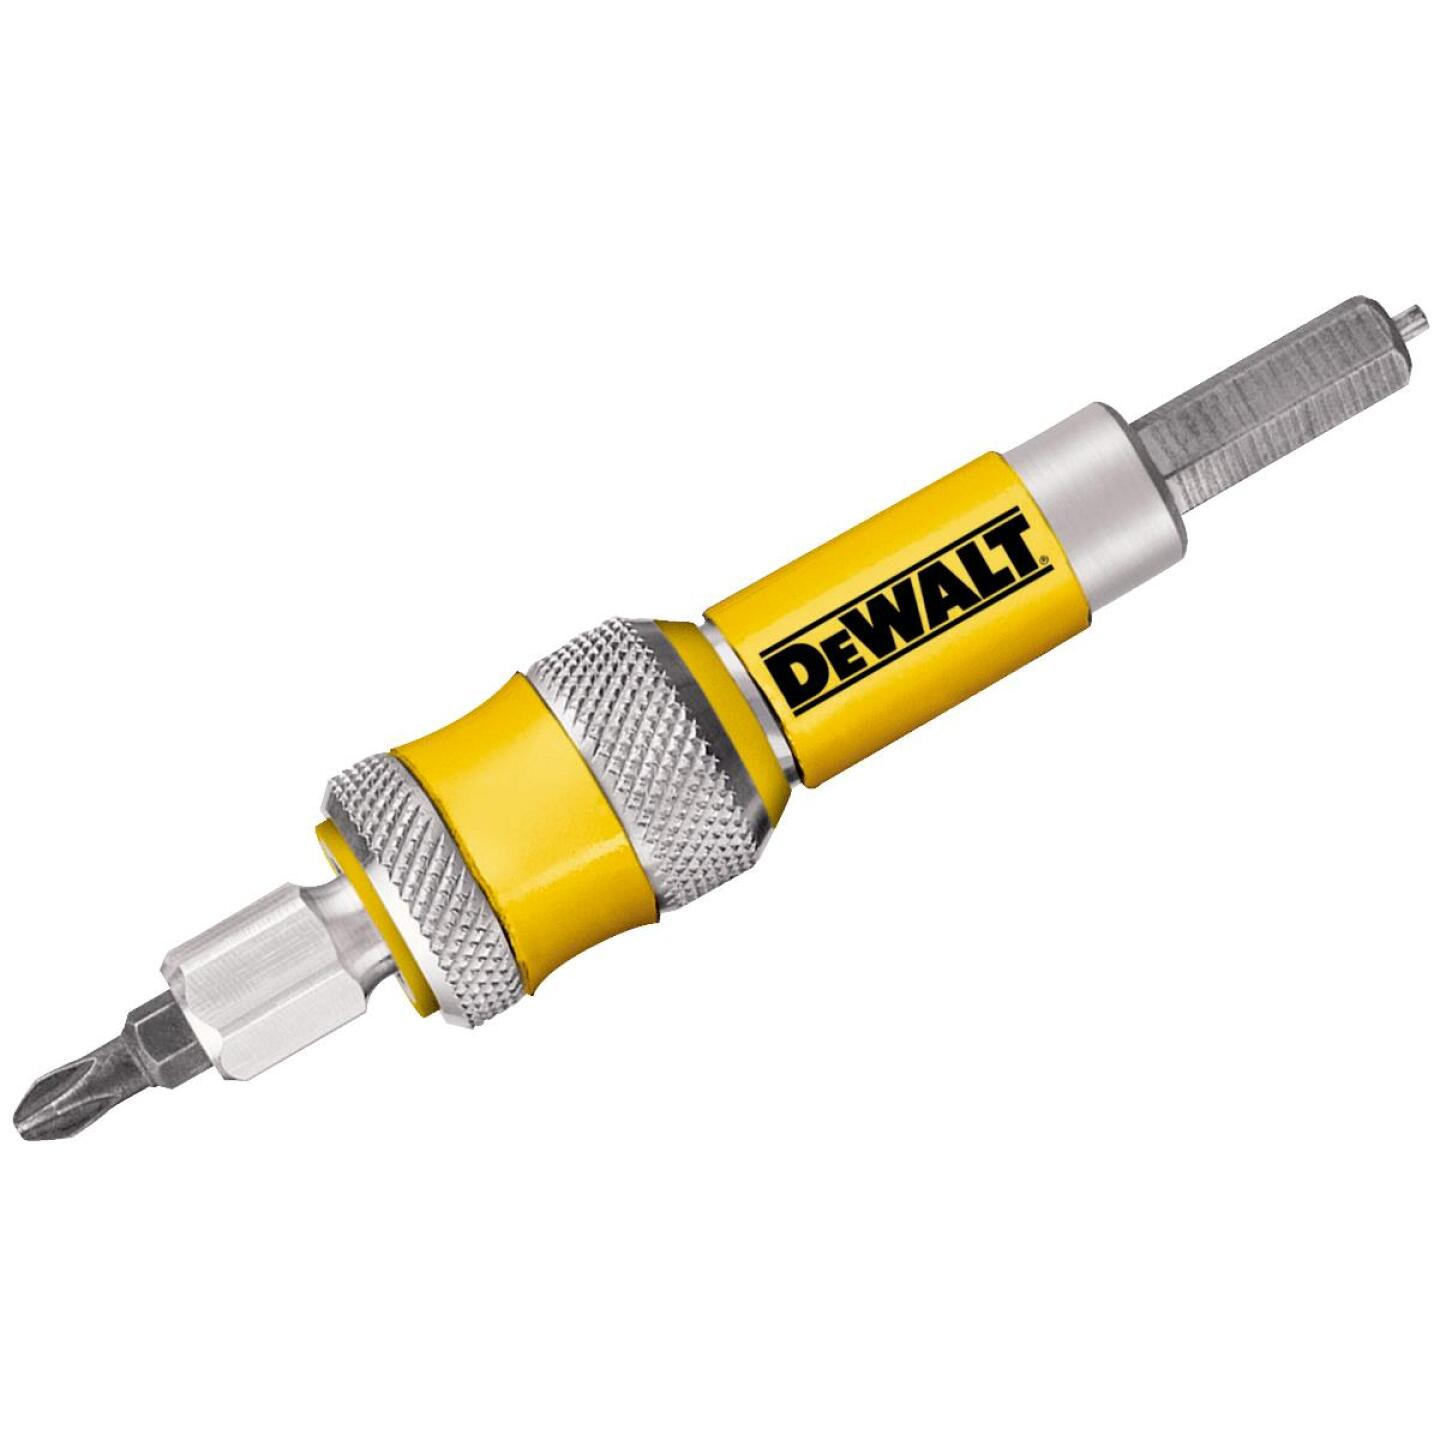 DeWalt #6 1/4 In. Black Oxide Drill & Drive Unit Image 1